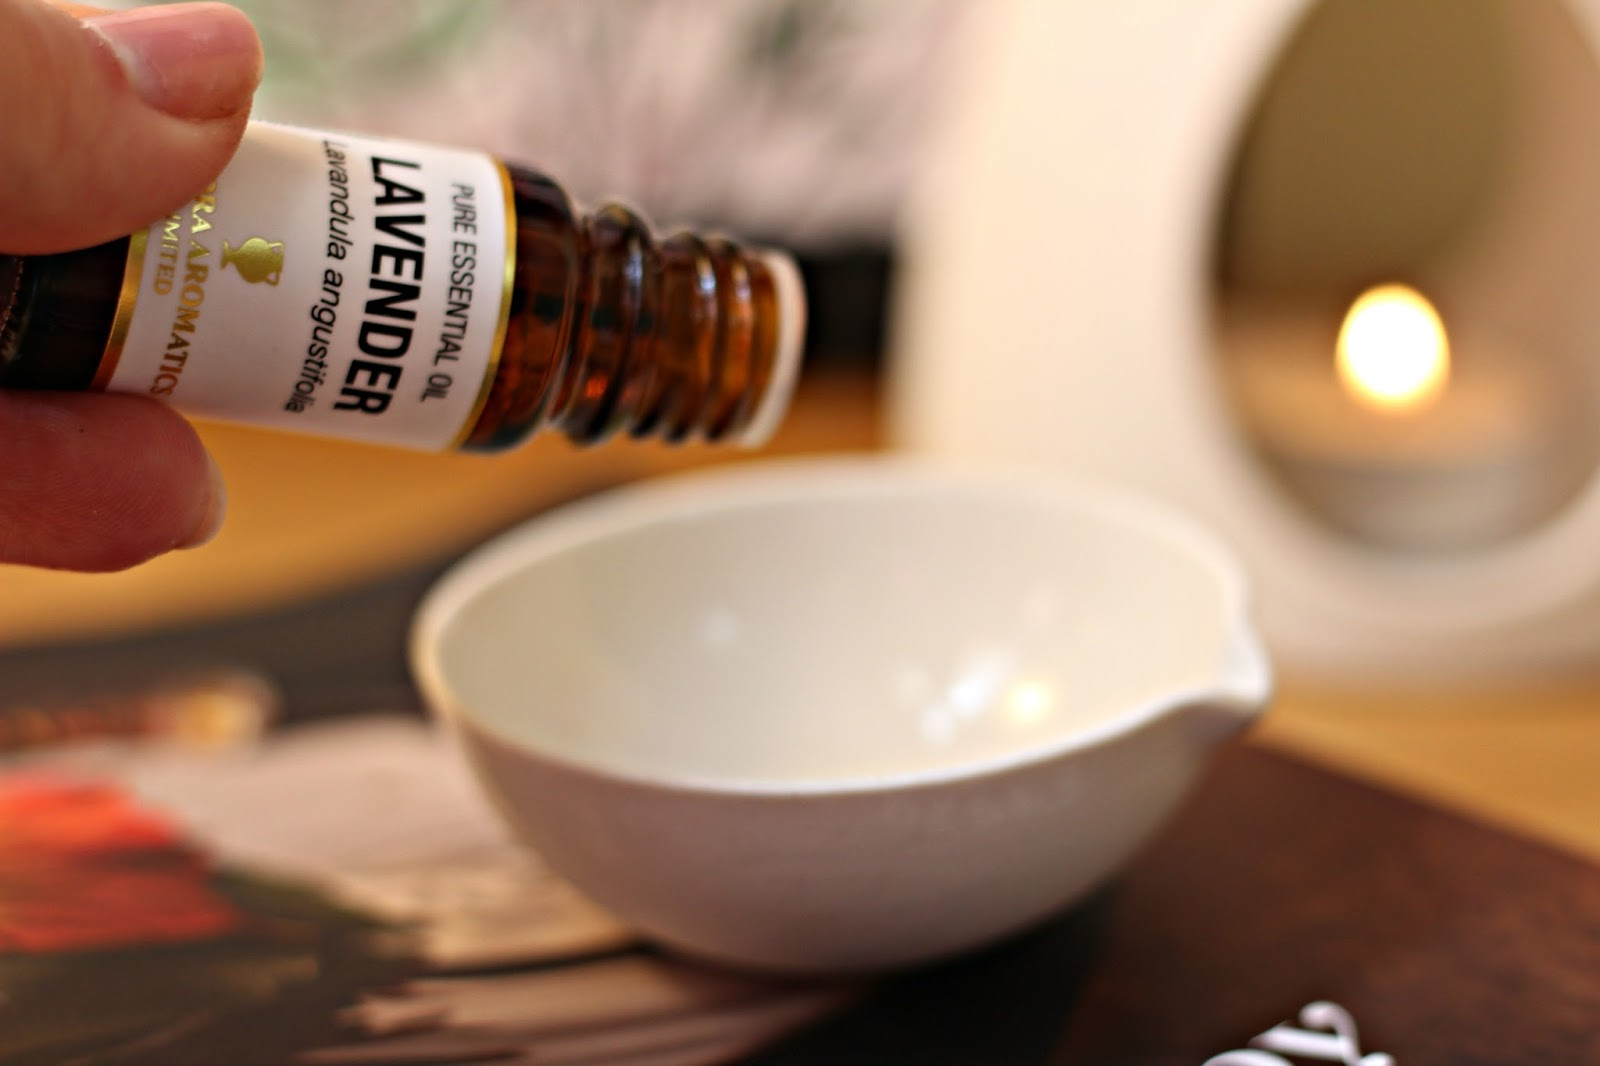 Aromatherapy – How I use essential oils in my home